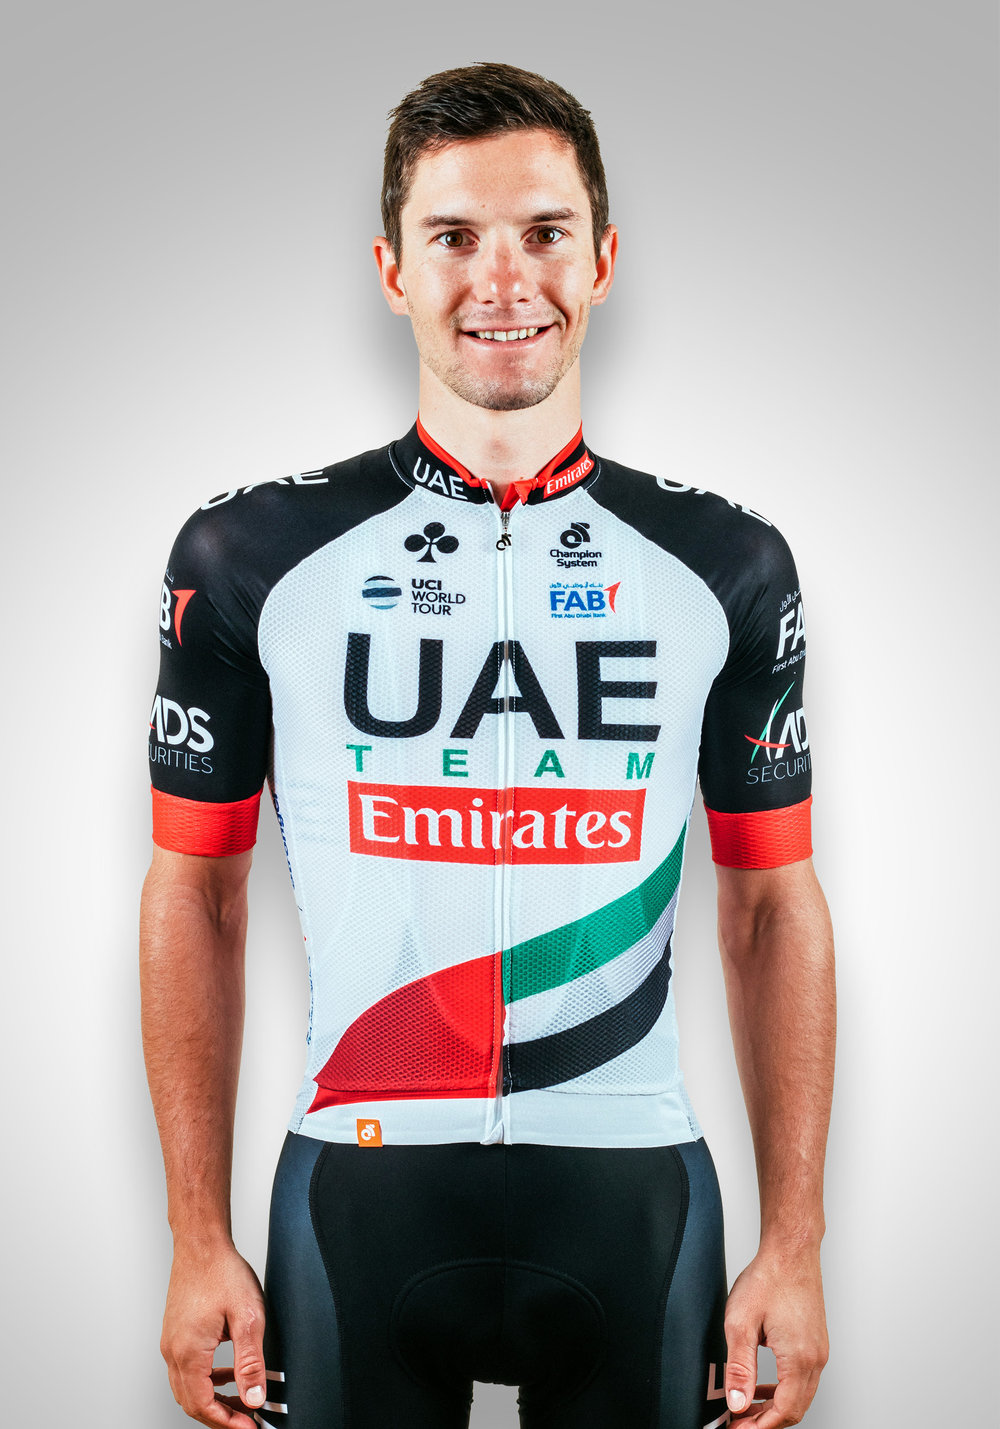 UAE Team Emirates 18 - Polanc Jan.jpg